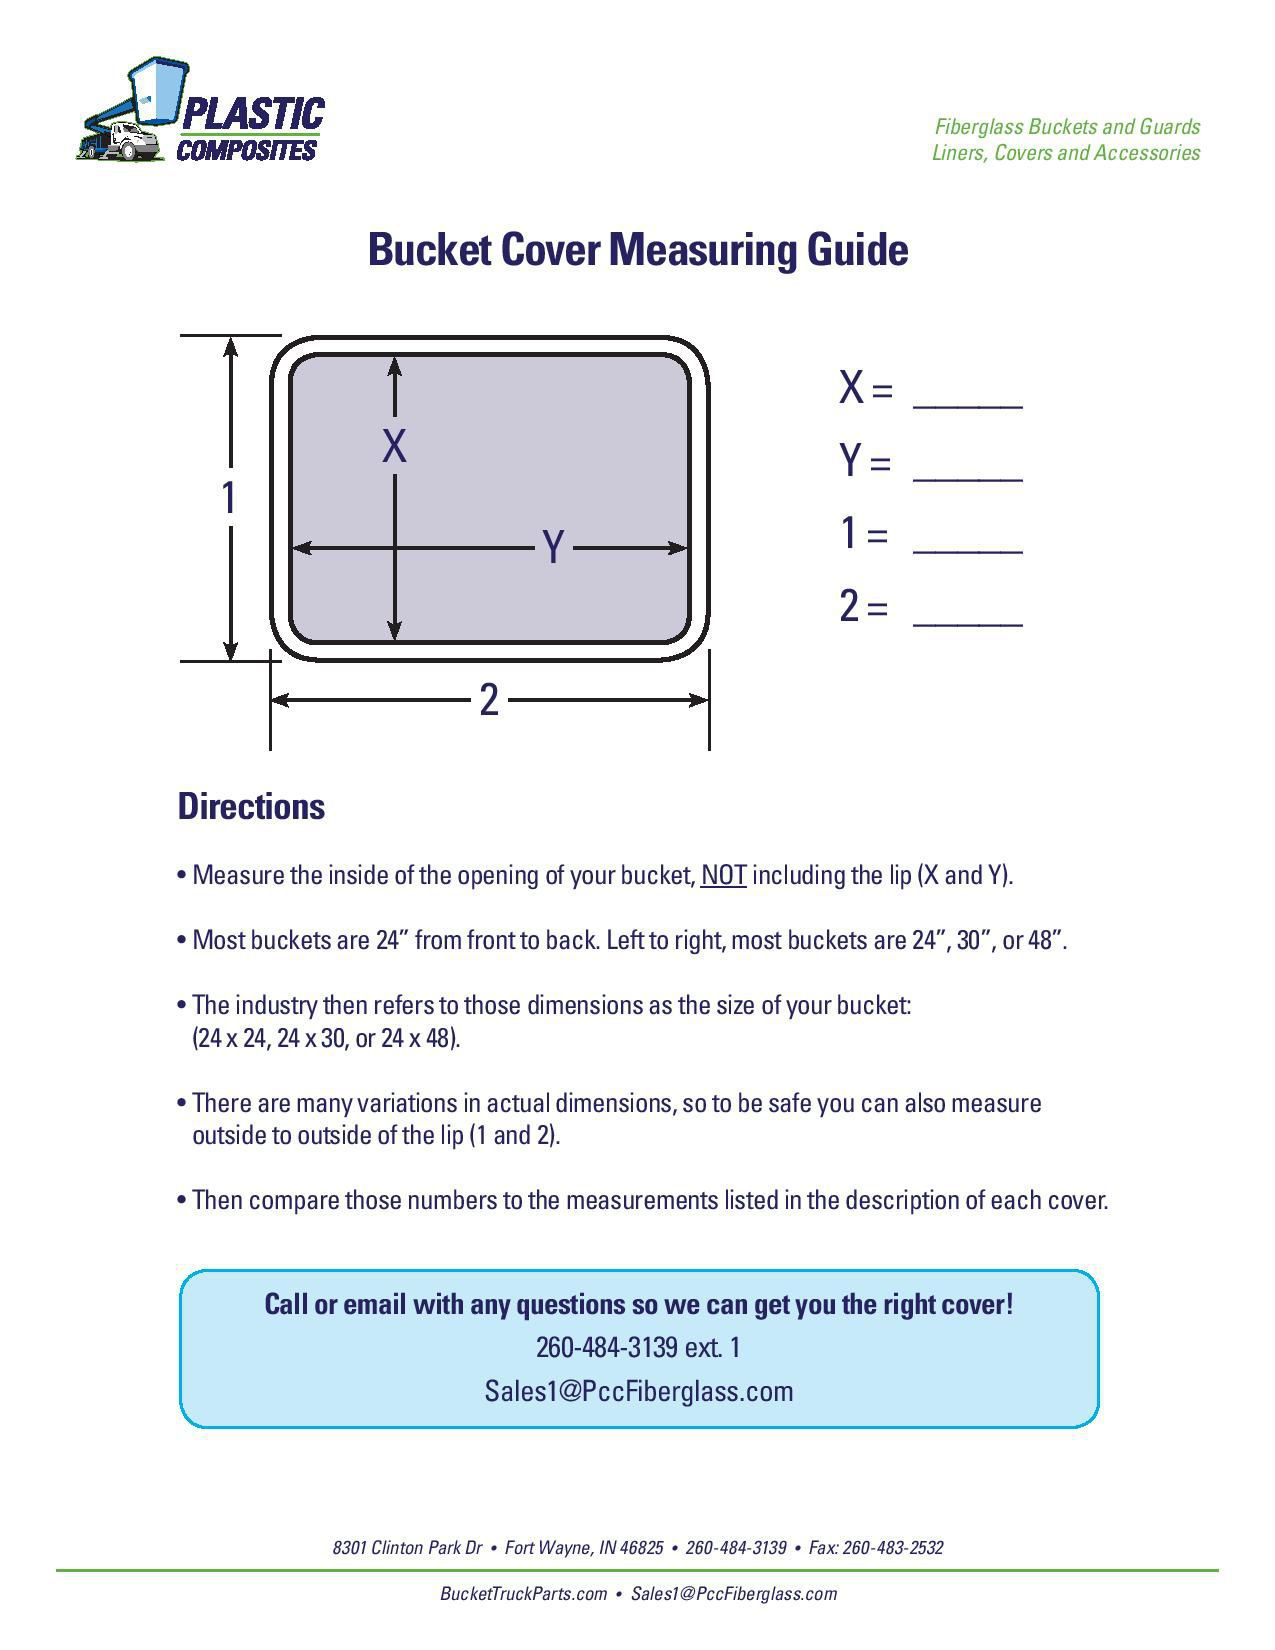 measuring-guide